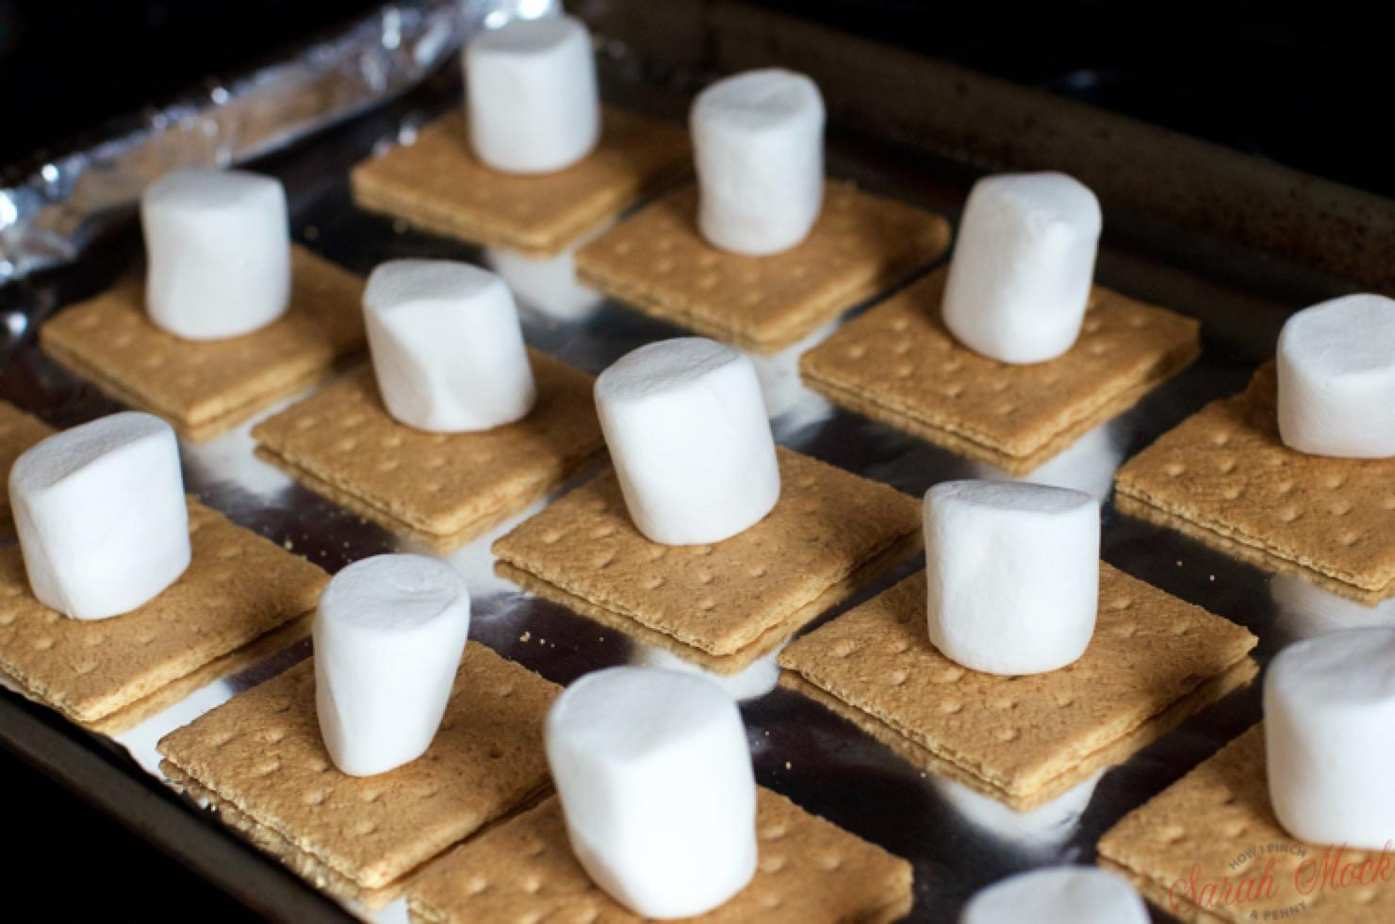 marhsmallows on graham crackers ready to be made into indoor smores